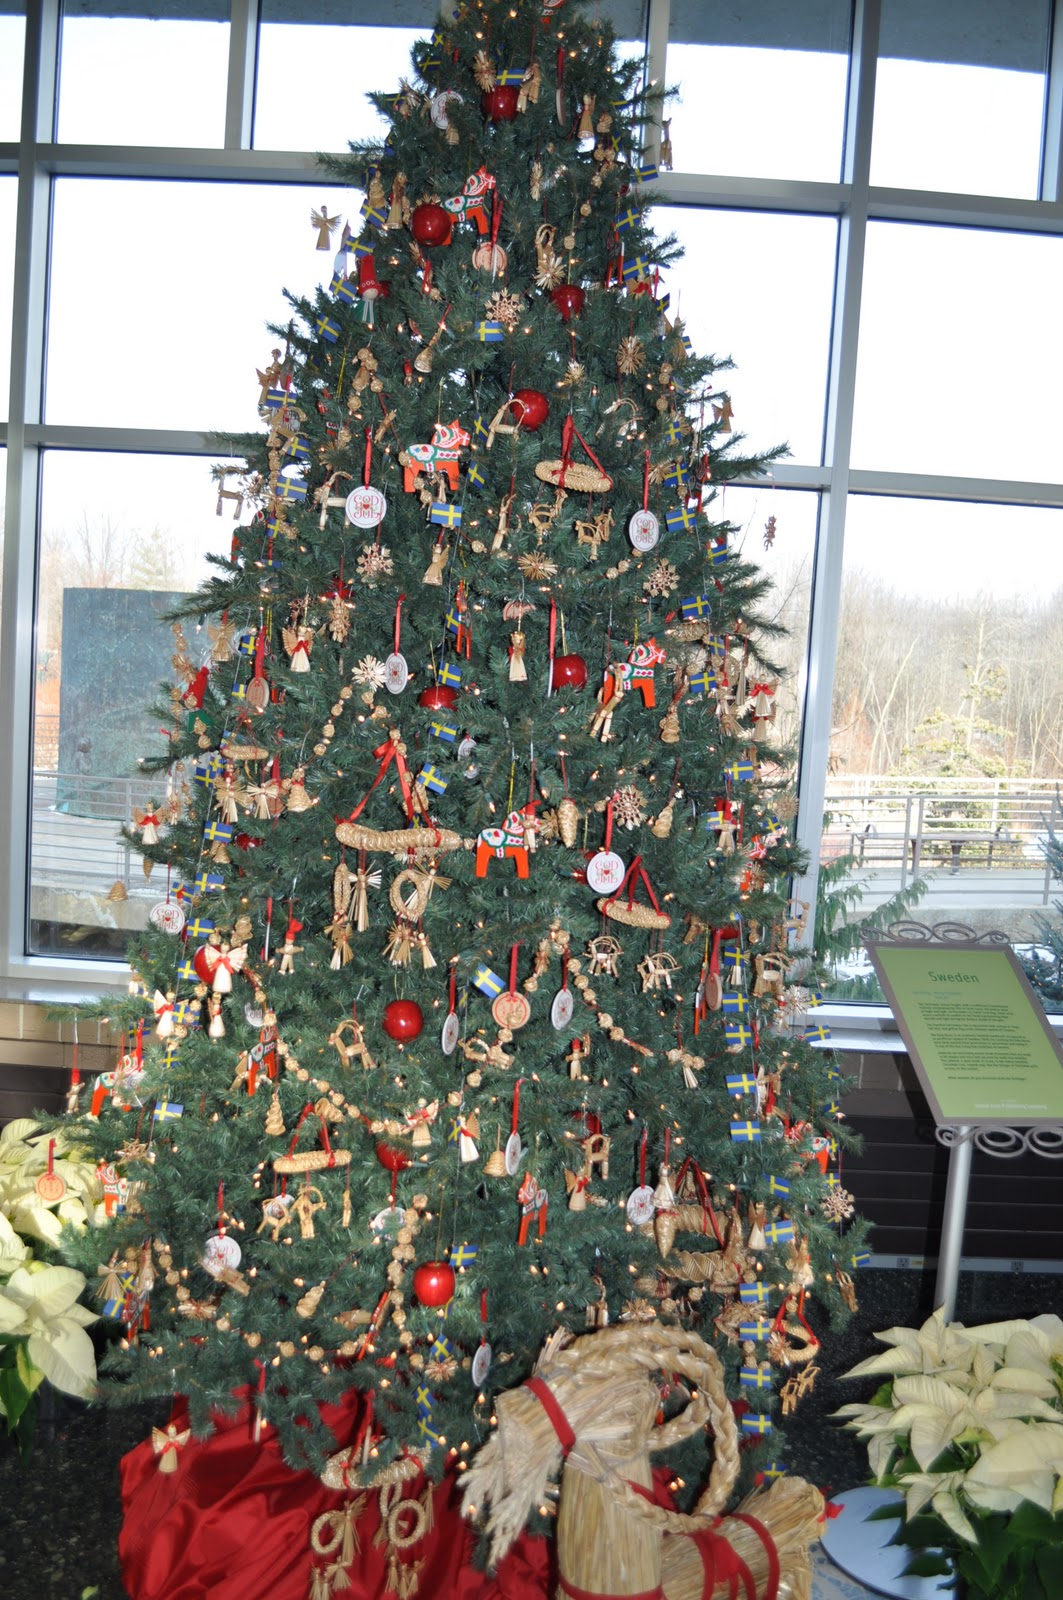 Michigan cottage cook christmas trees from south korea netherlands